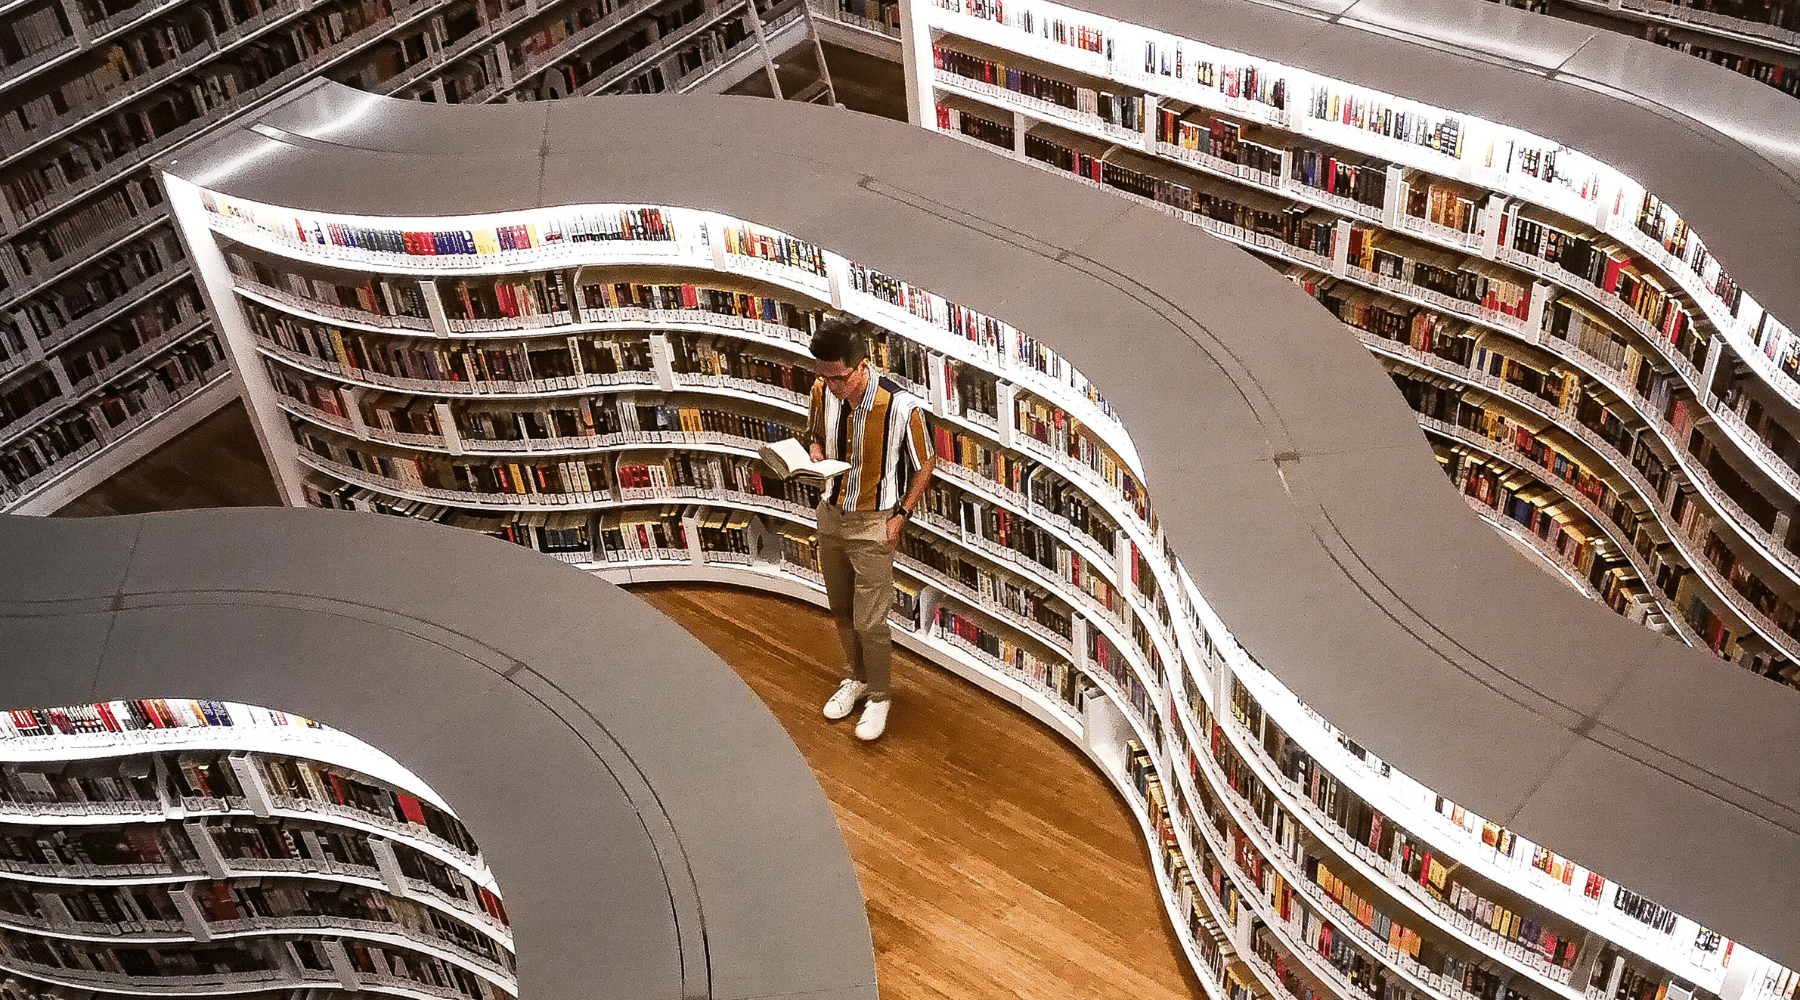 Man standing in rows of bookshelves holding book